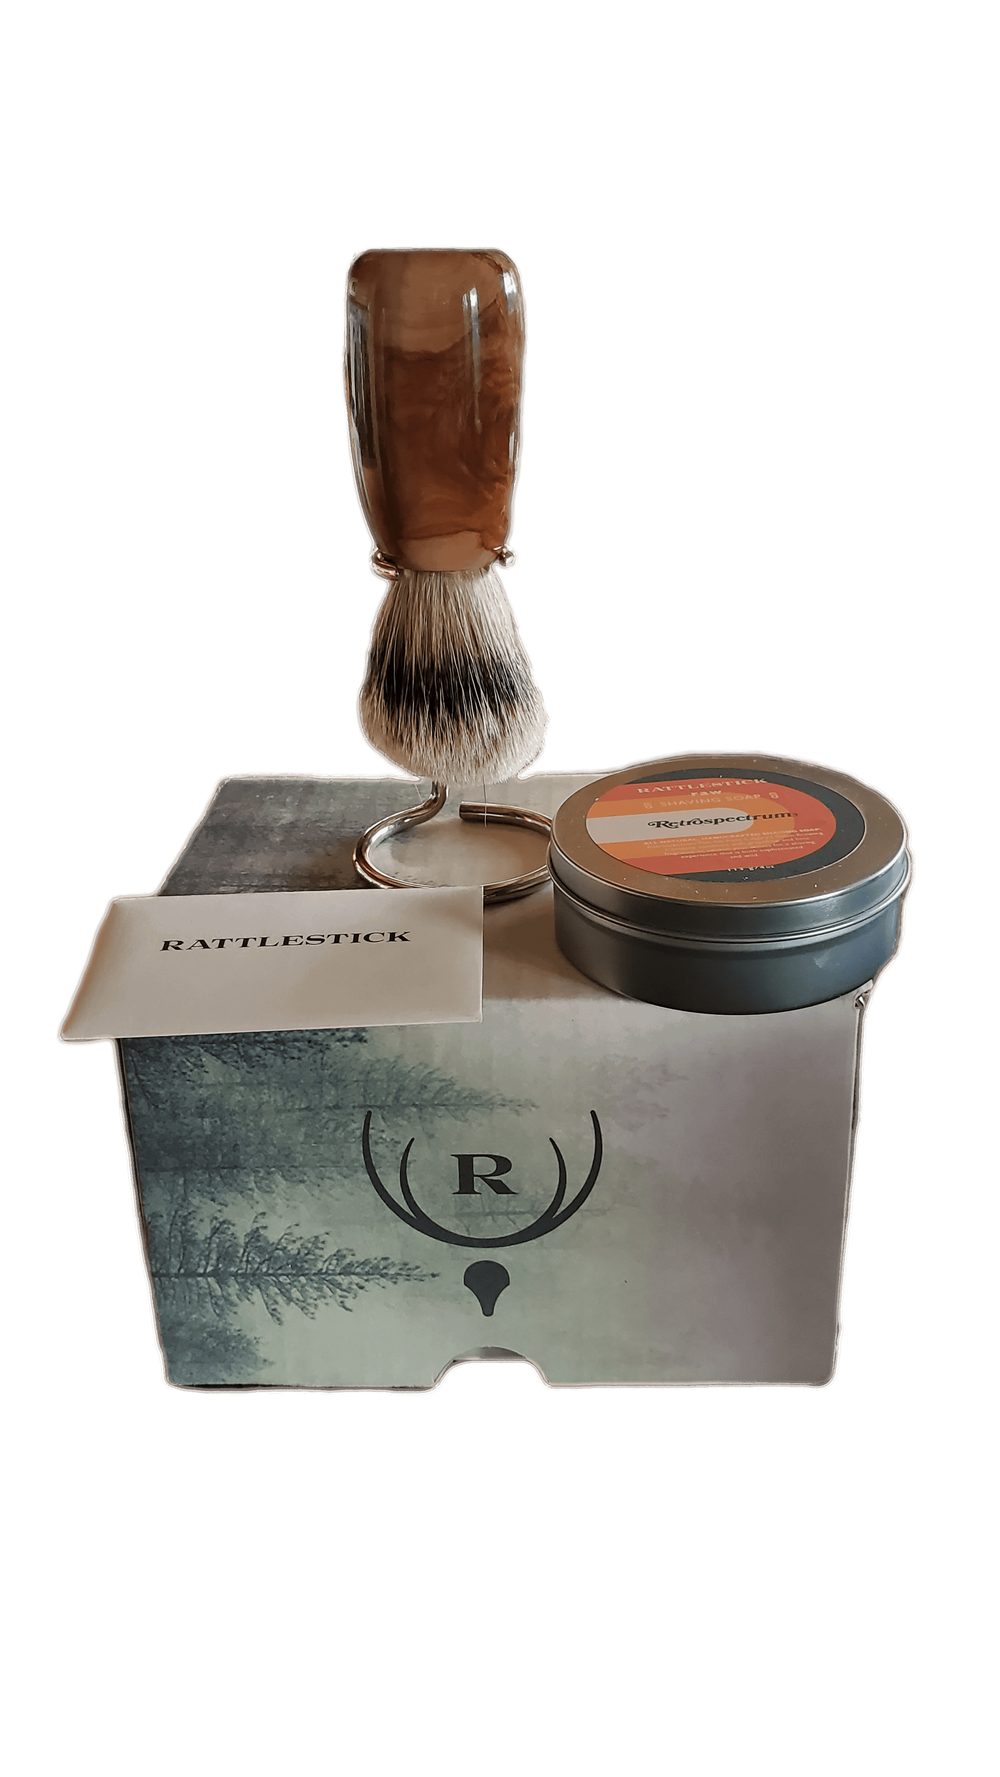 Rattlestick Discover the Ritual - Brush, Stand, Soap